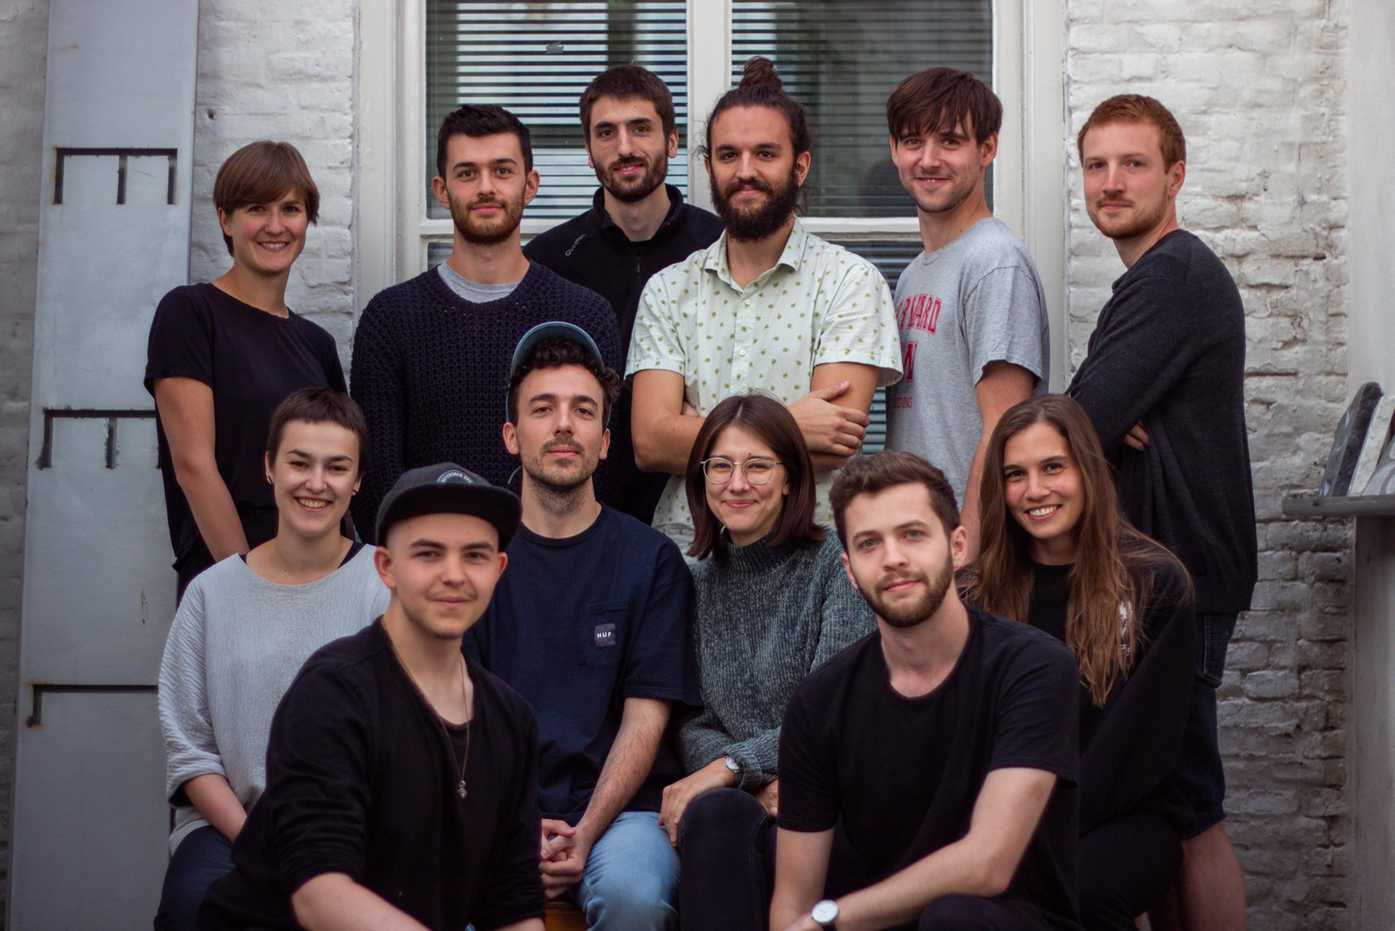 The class of TypeMedia 2019